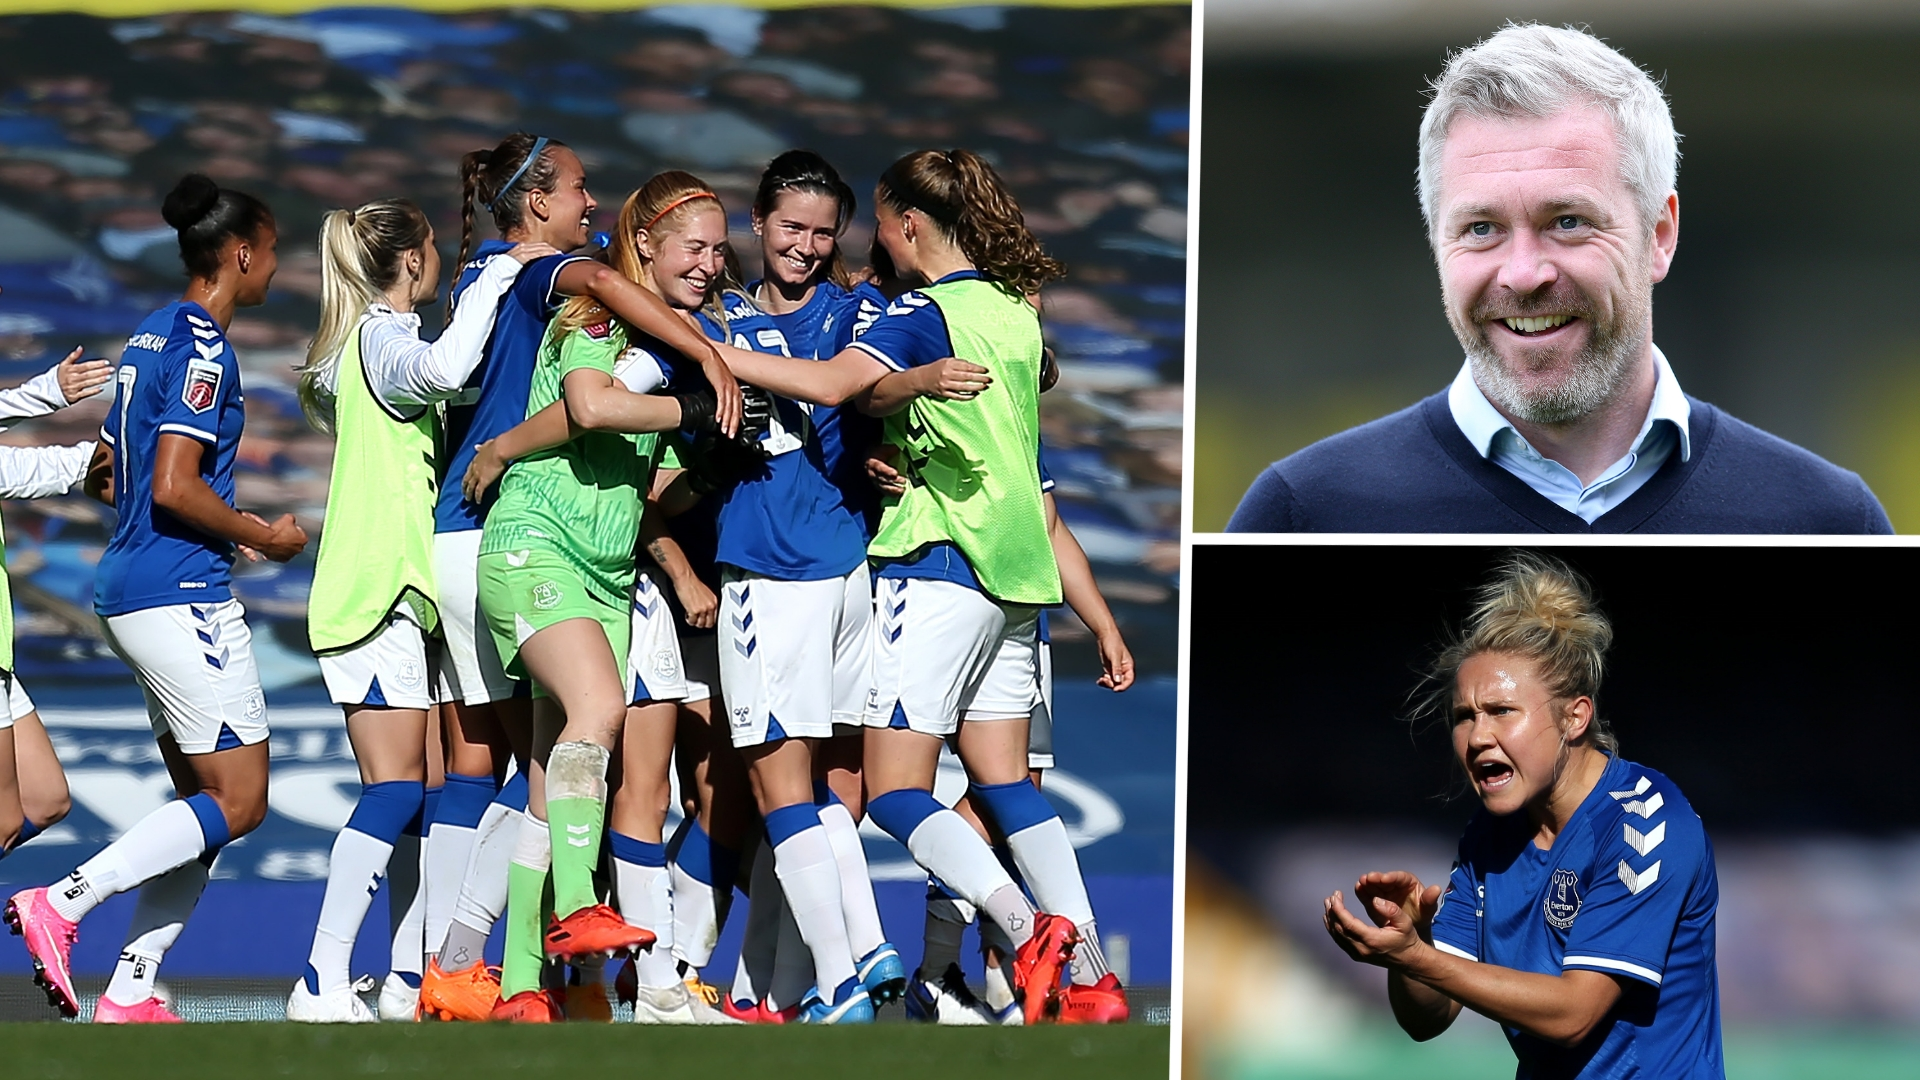 Believe The Hype Everton Prove Title Credentials With Chelsea Upset Goal Com